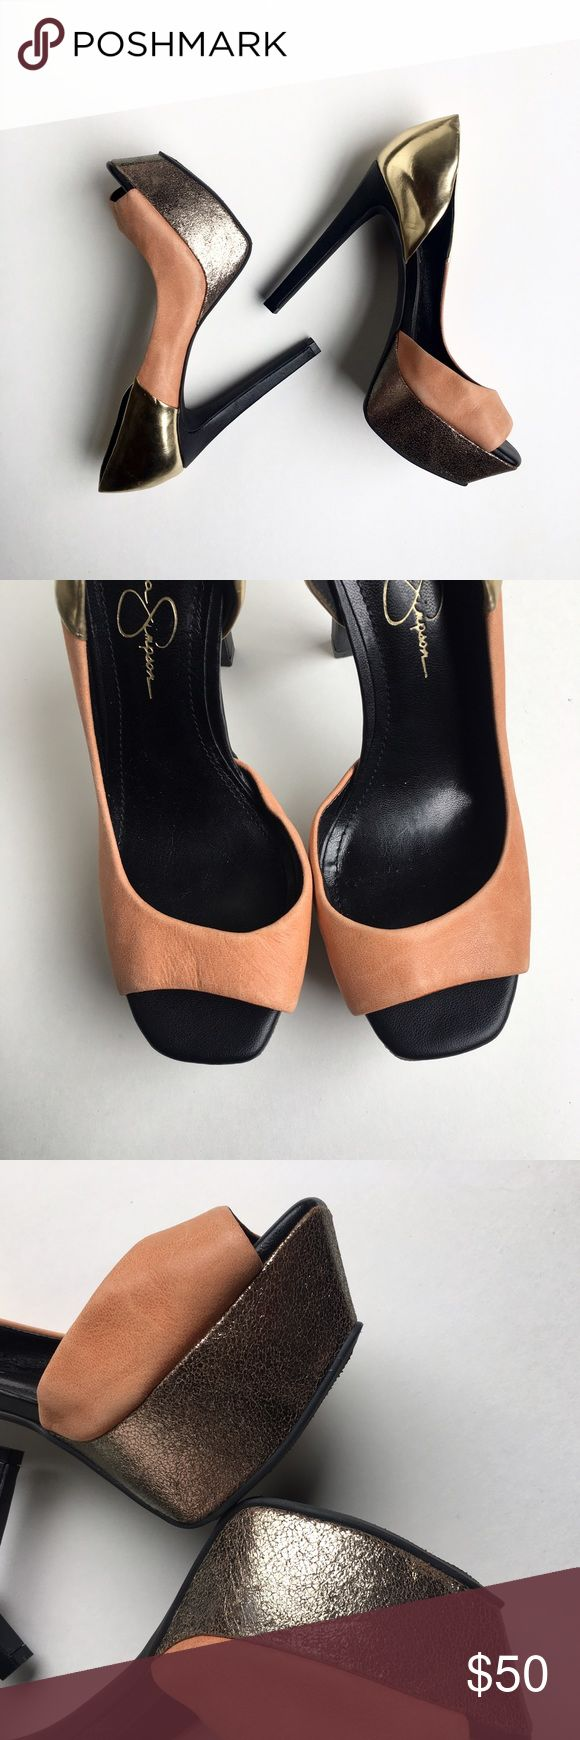 17 Best ideas about Gold And Black Heels on Pinterest ...